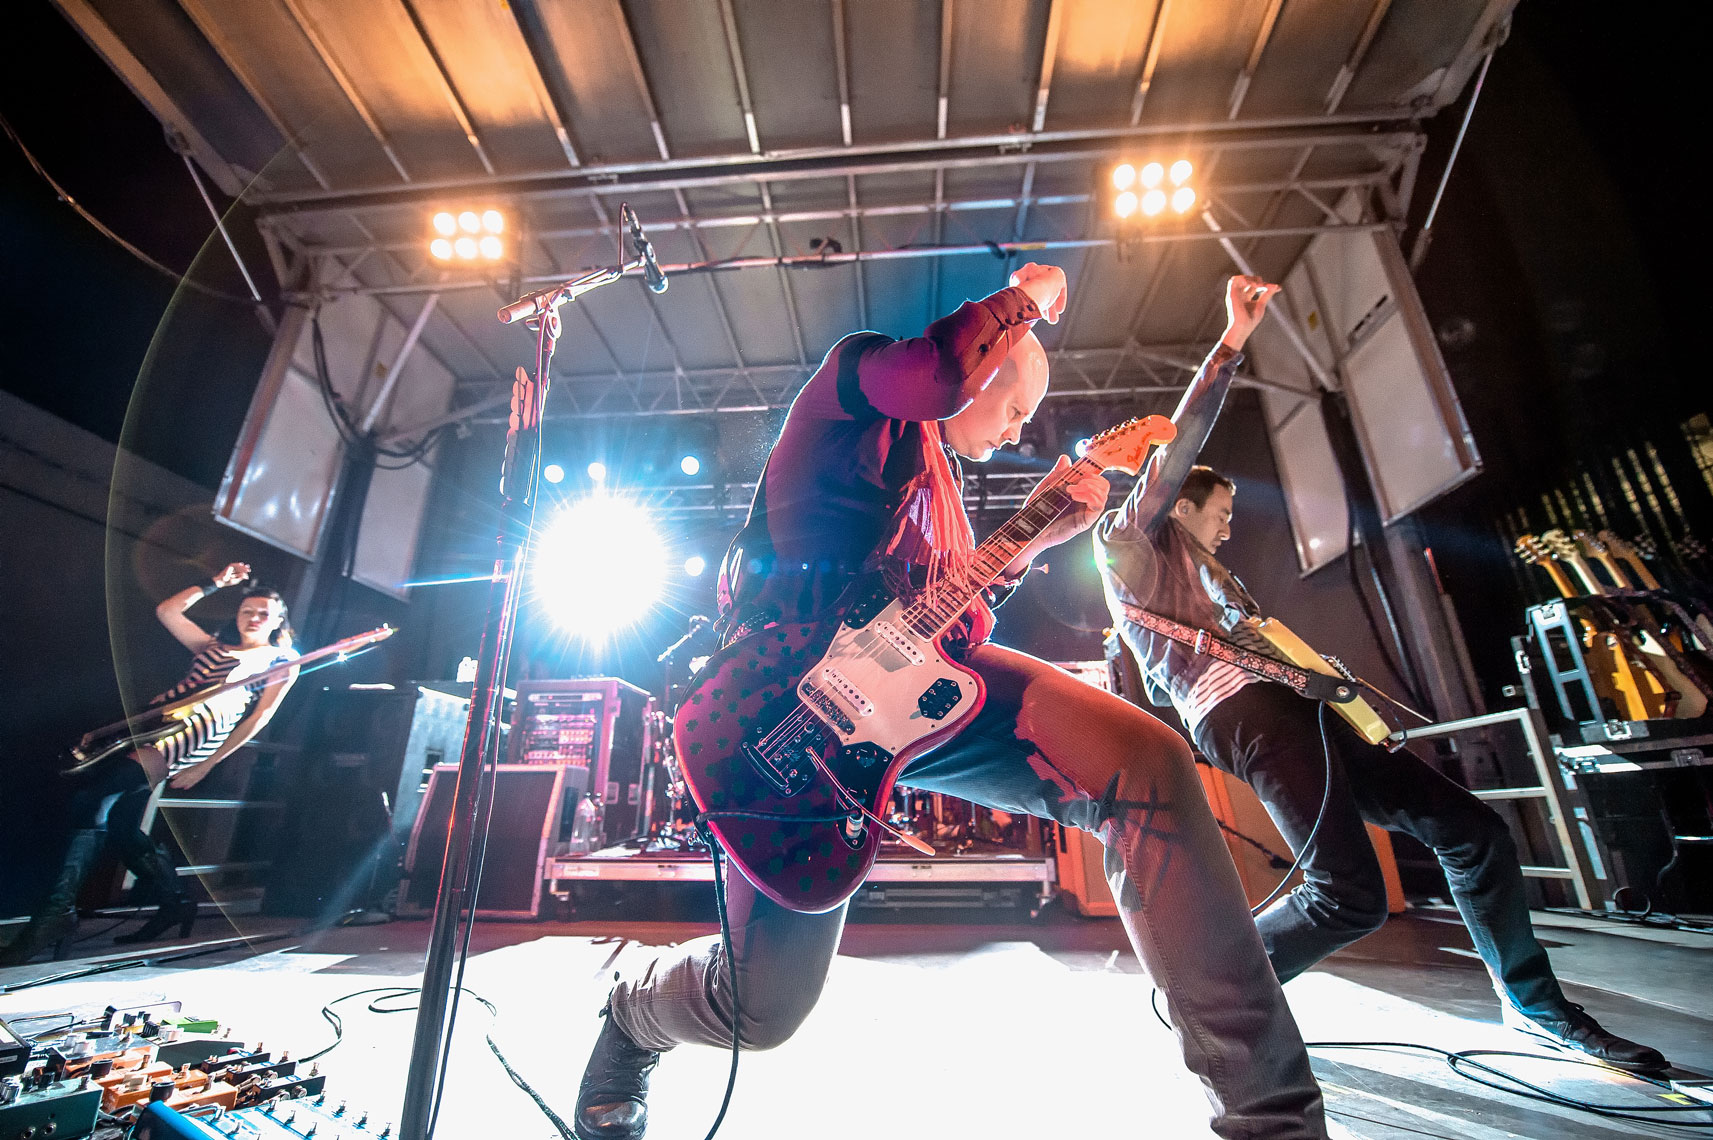 The-Smashing-Pumpkins-performs-at-The-Red-Bull-Sound-Select-Party-during-SXSW-2013-on-Saturday,-March-16-2